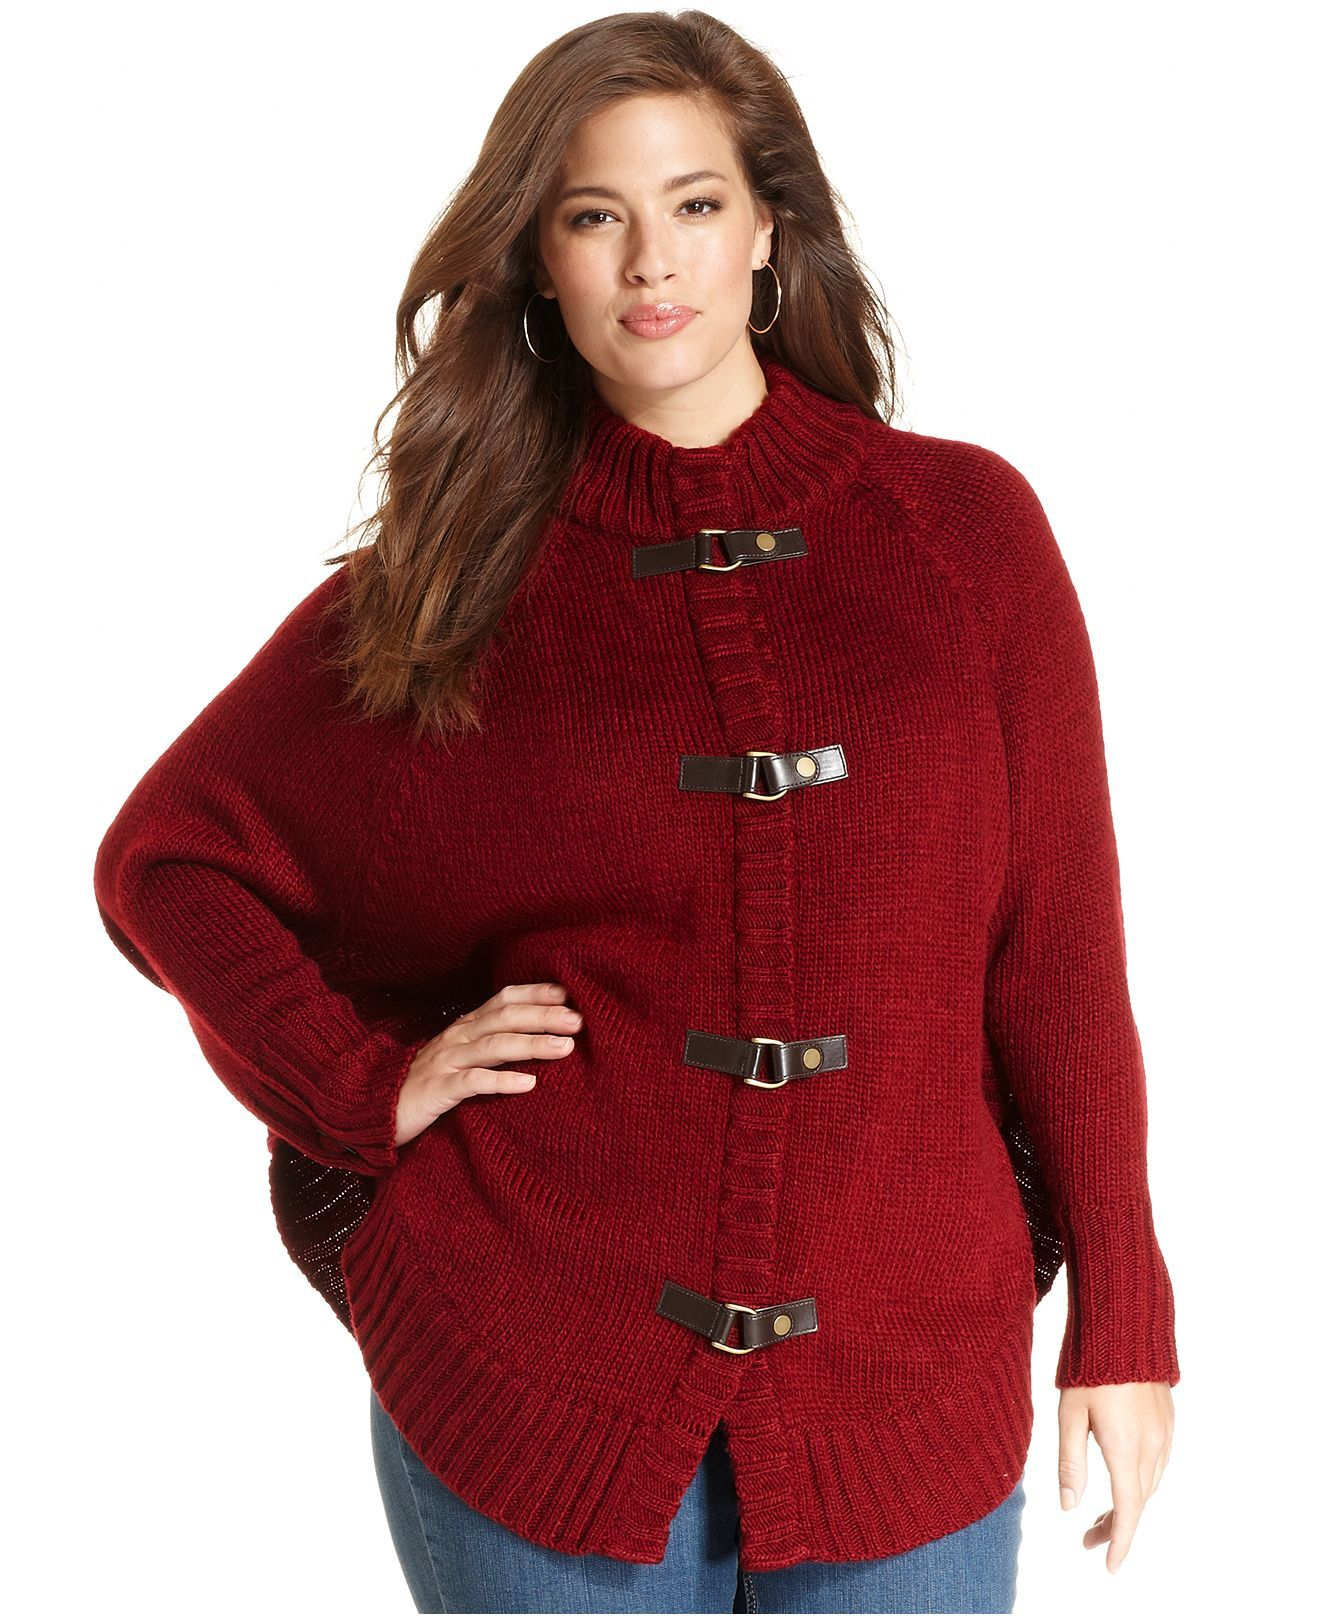 Jones New York Signature Plus Size Sweater, Long-Sleeve Poncho, In Red - Macy's